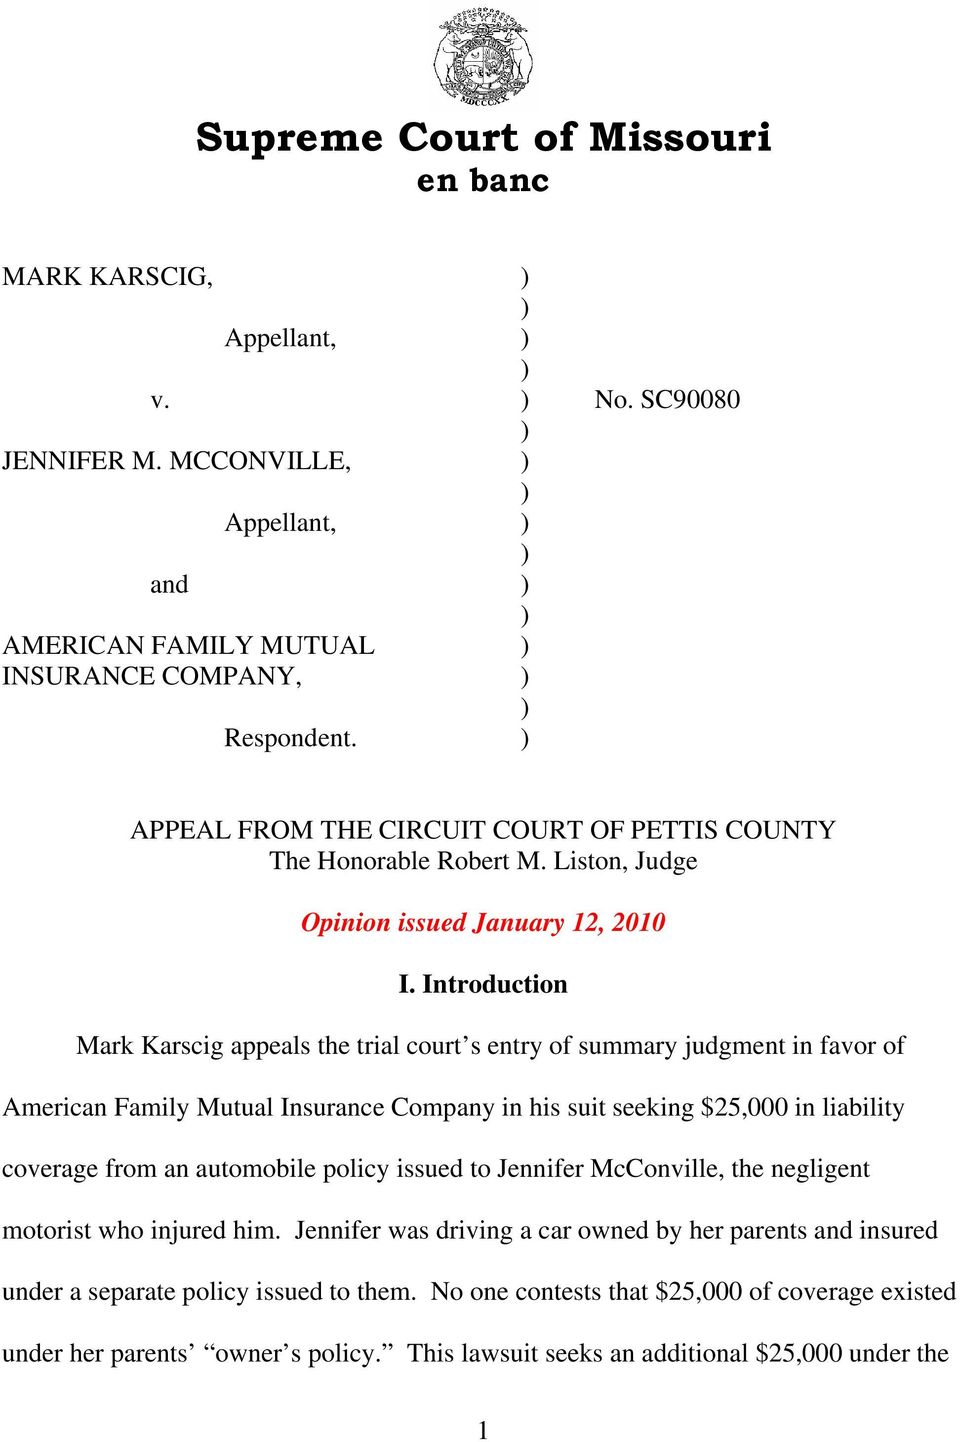 Introduction Mark Karscig appeals the trial court s entry of summary judgment in favor of American Family Mutual Insurance Company in his suit seeking $25,000 in liability coverage from an automobile